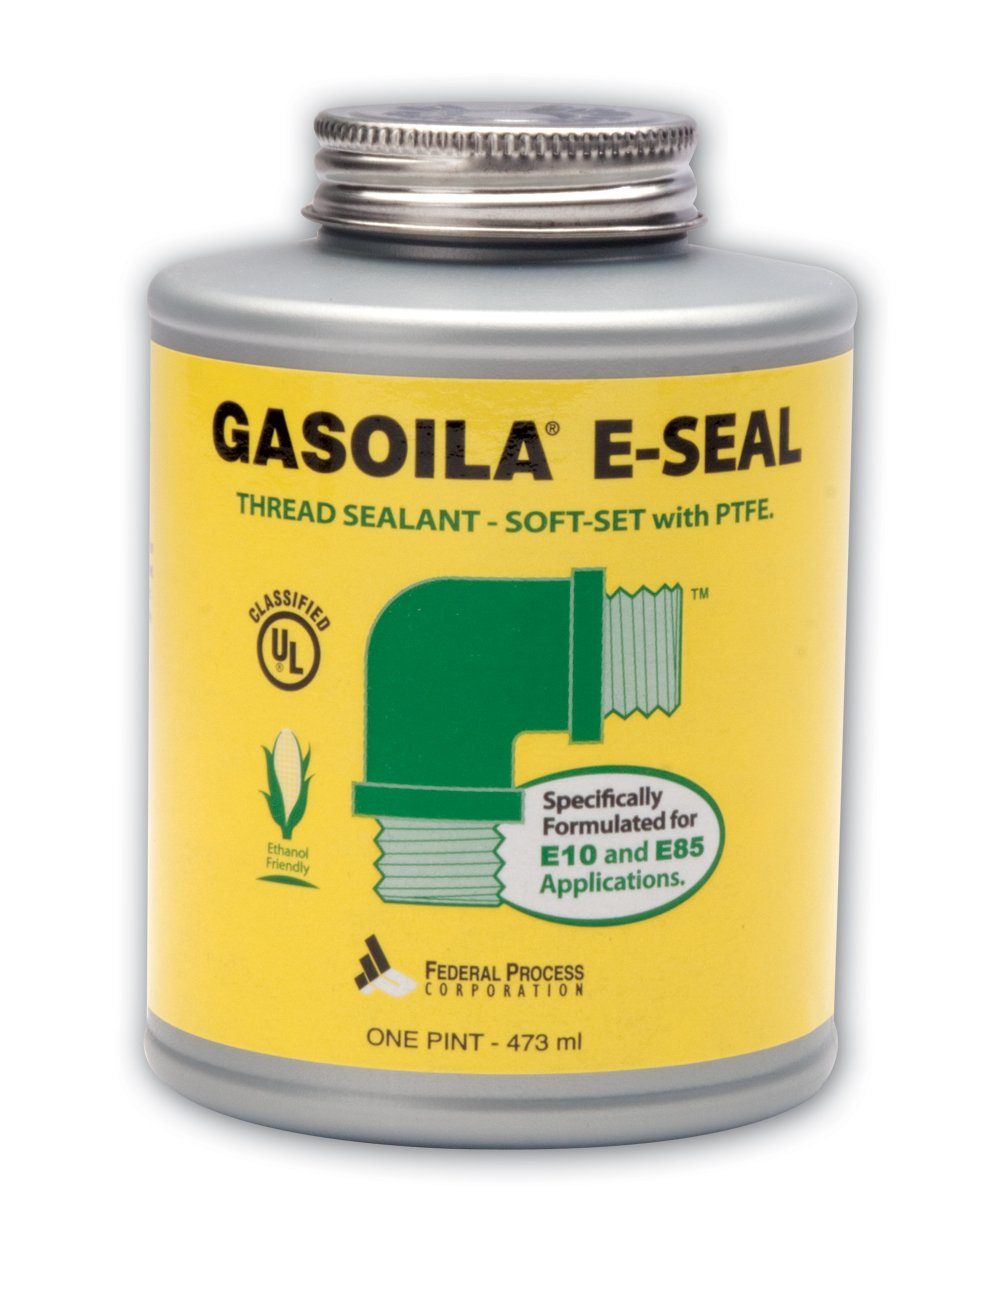 Gasoila E-Seal Pipe Thread Sealant with PTFE Paste, Non Toxic, -100 to 600 Degree F, 1/4 Pint Brush Federal Process GE04